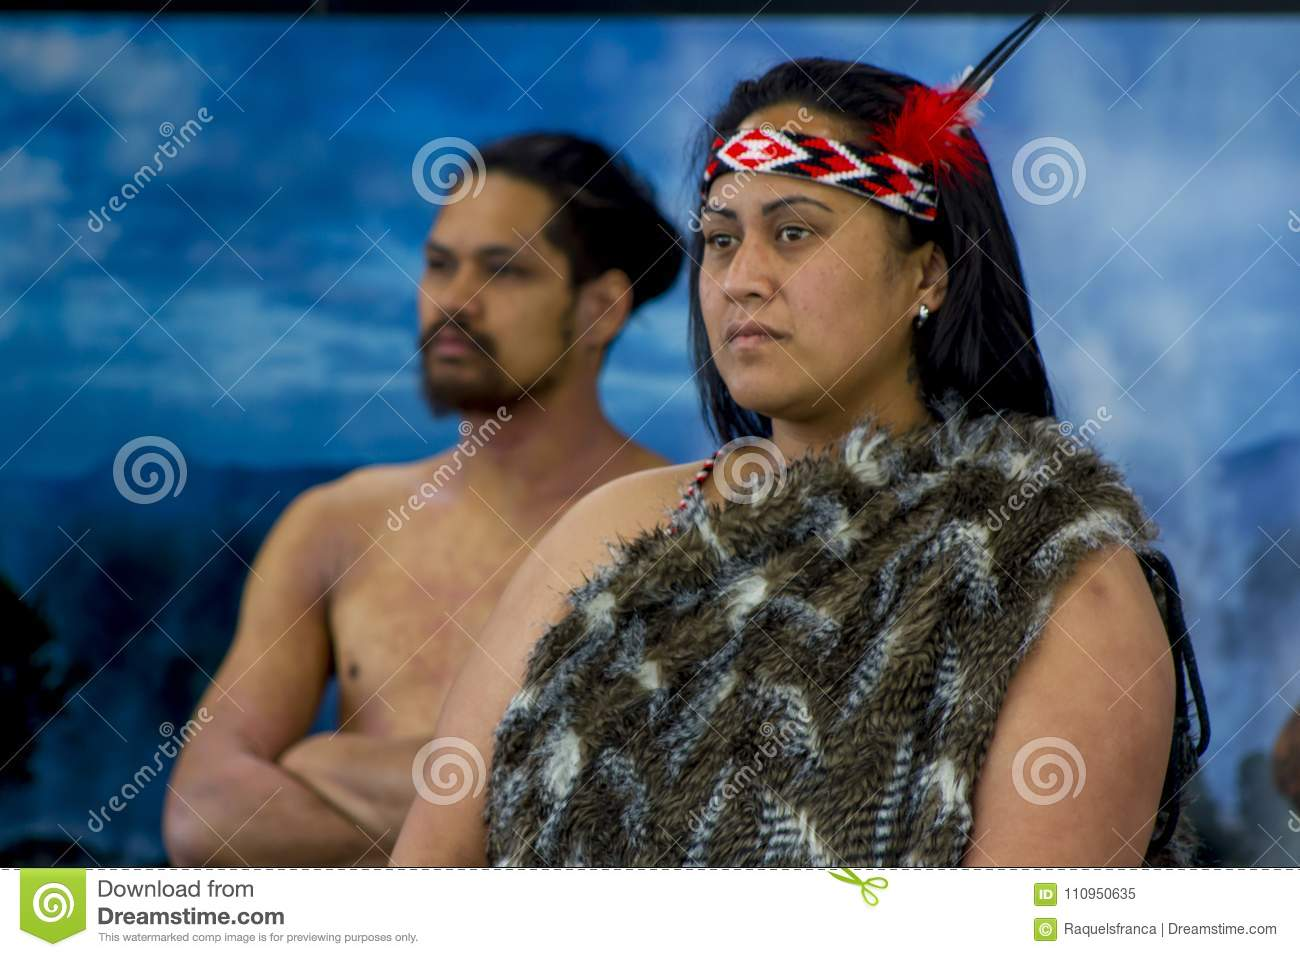 Men seeking maori women